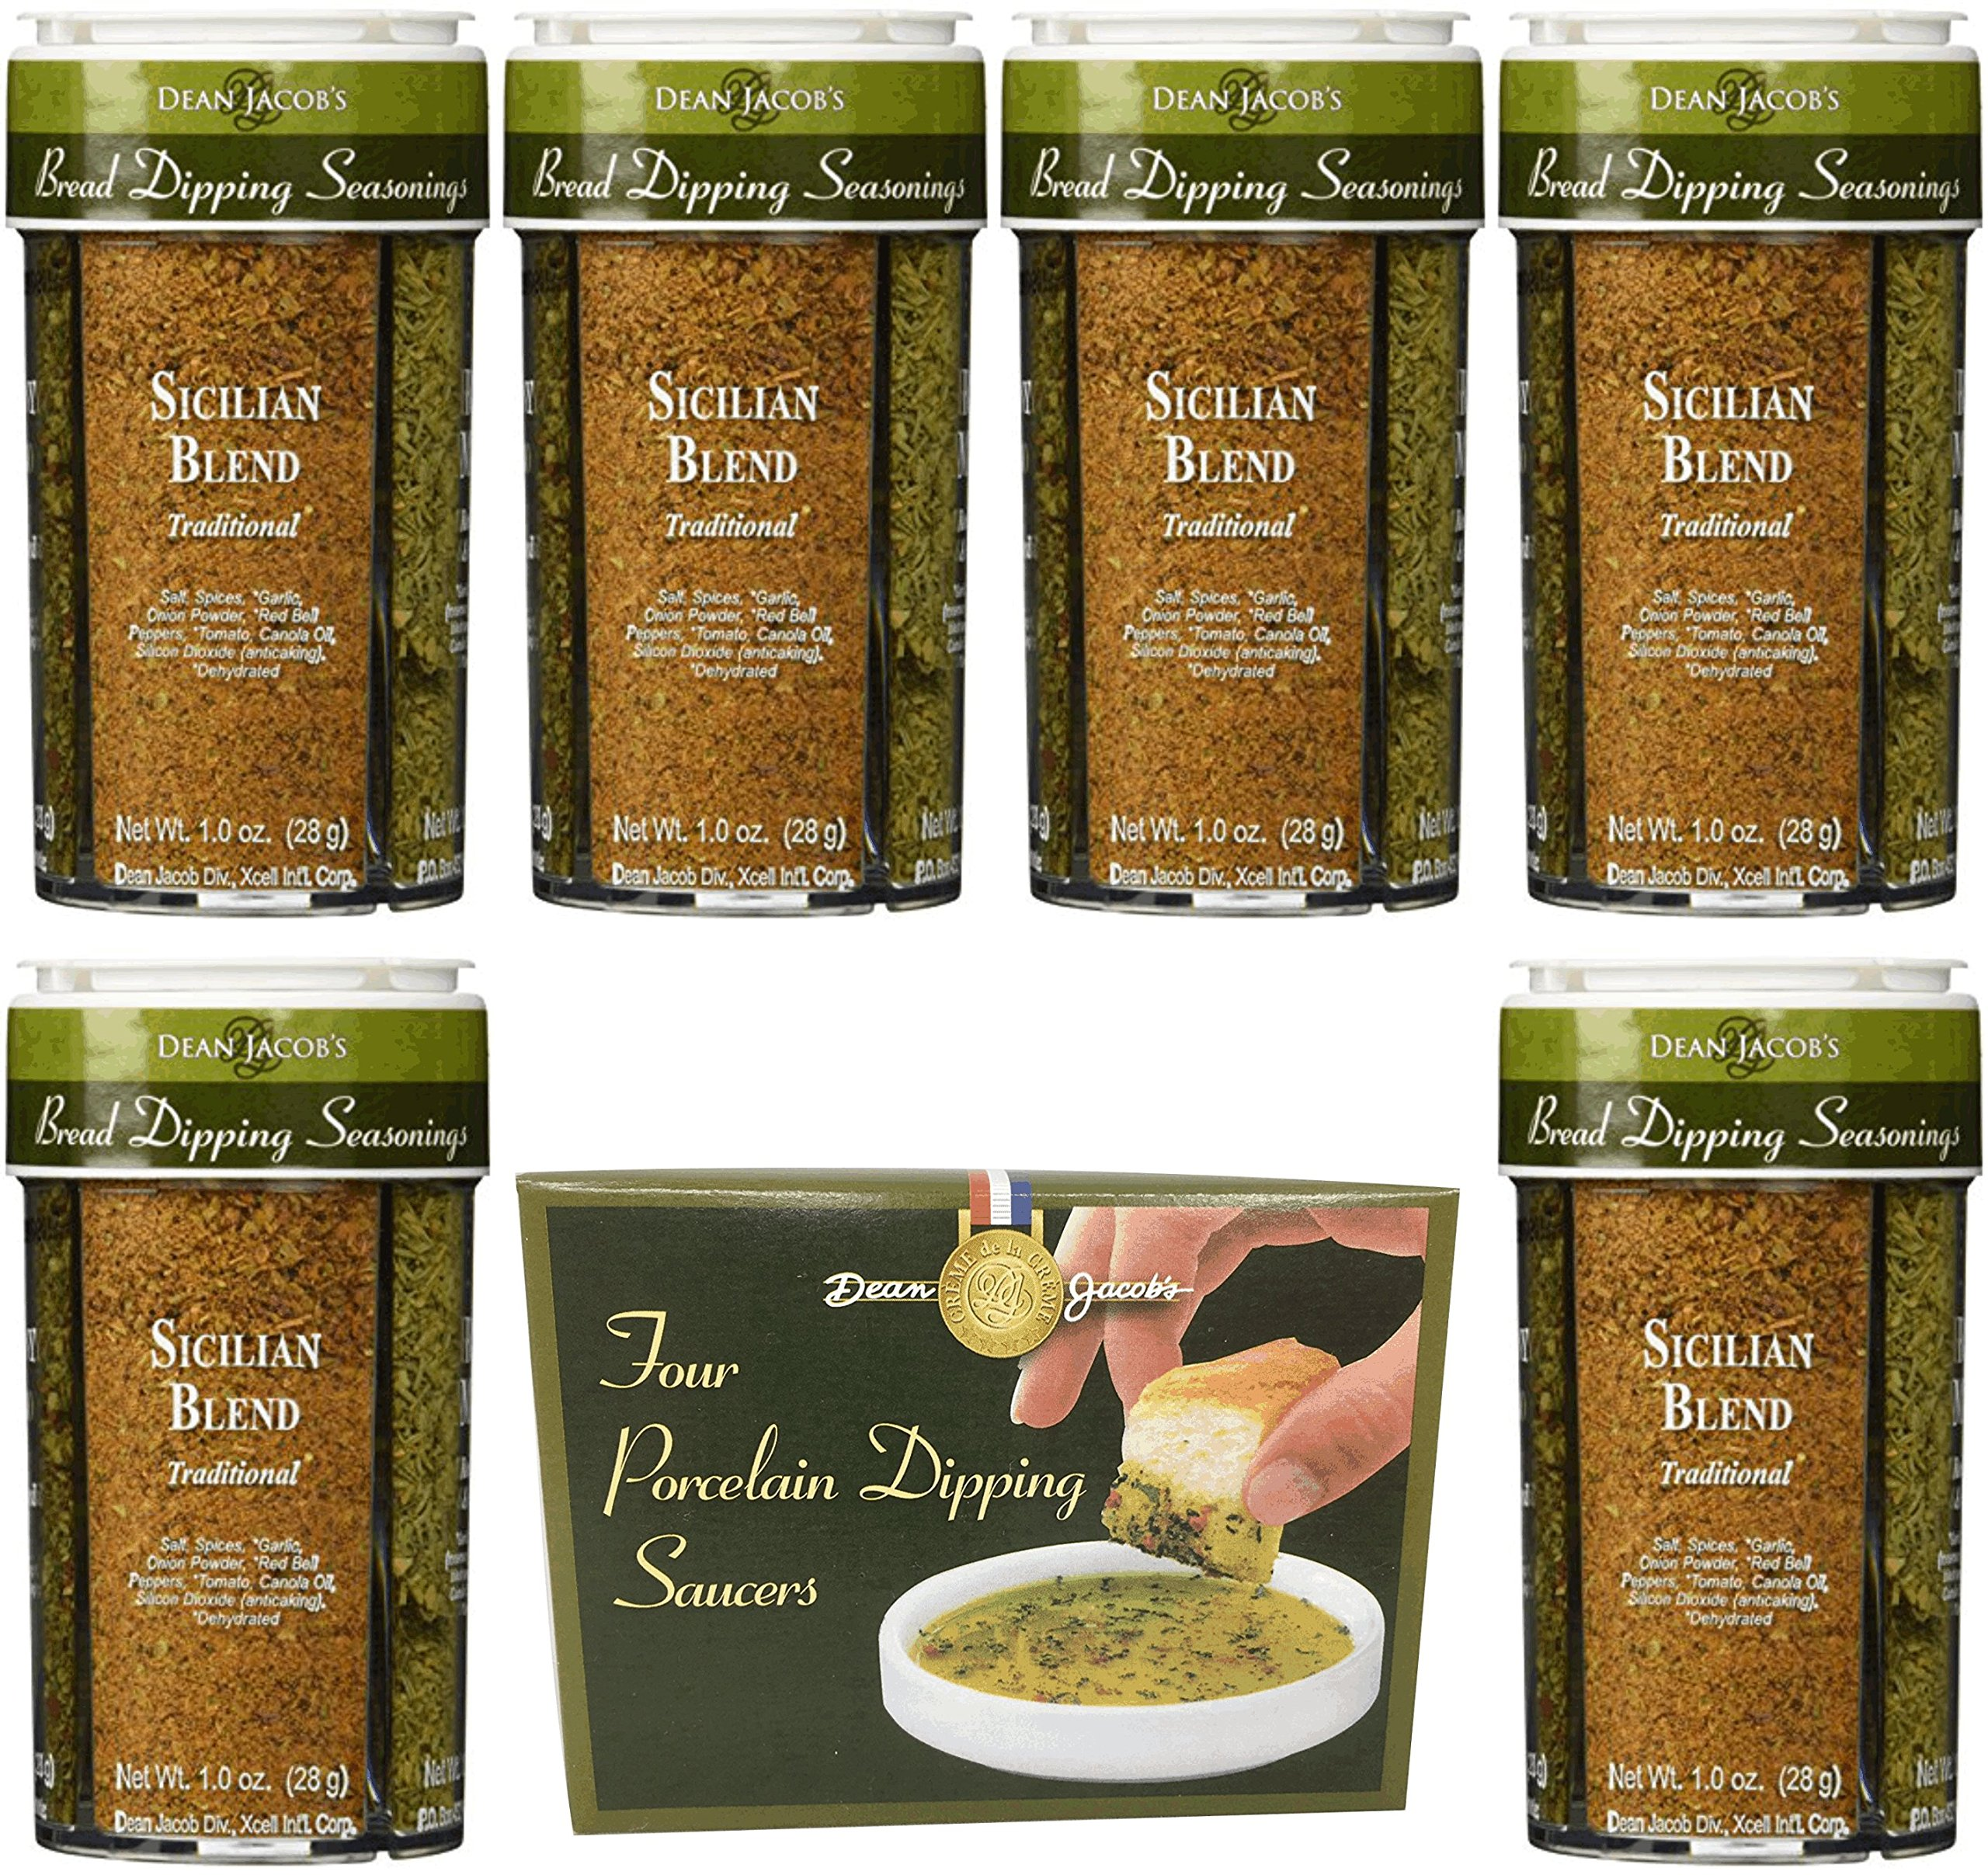 Dean Jacob's Bread Dipping Seasonings 10 piece Set - Includes 1 Set of Porcelain Dipping Saucers in a Decorative Box and 6 Seasoning Jars